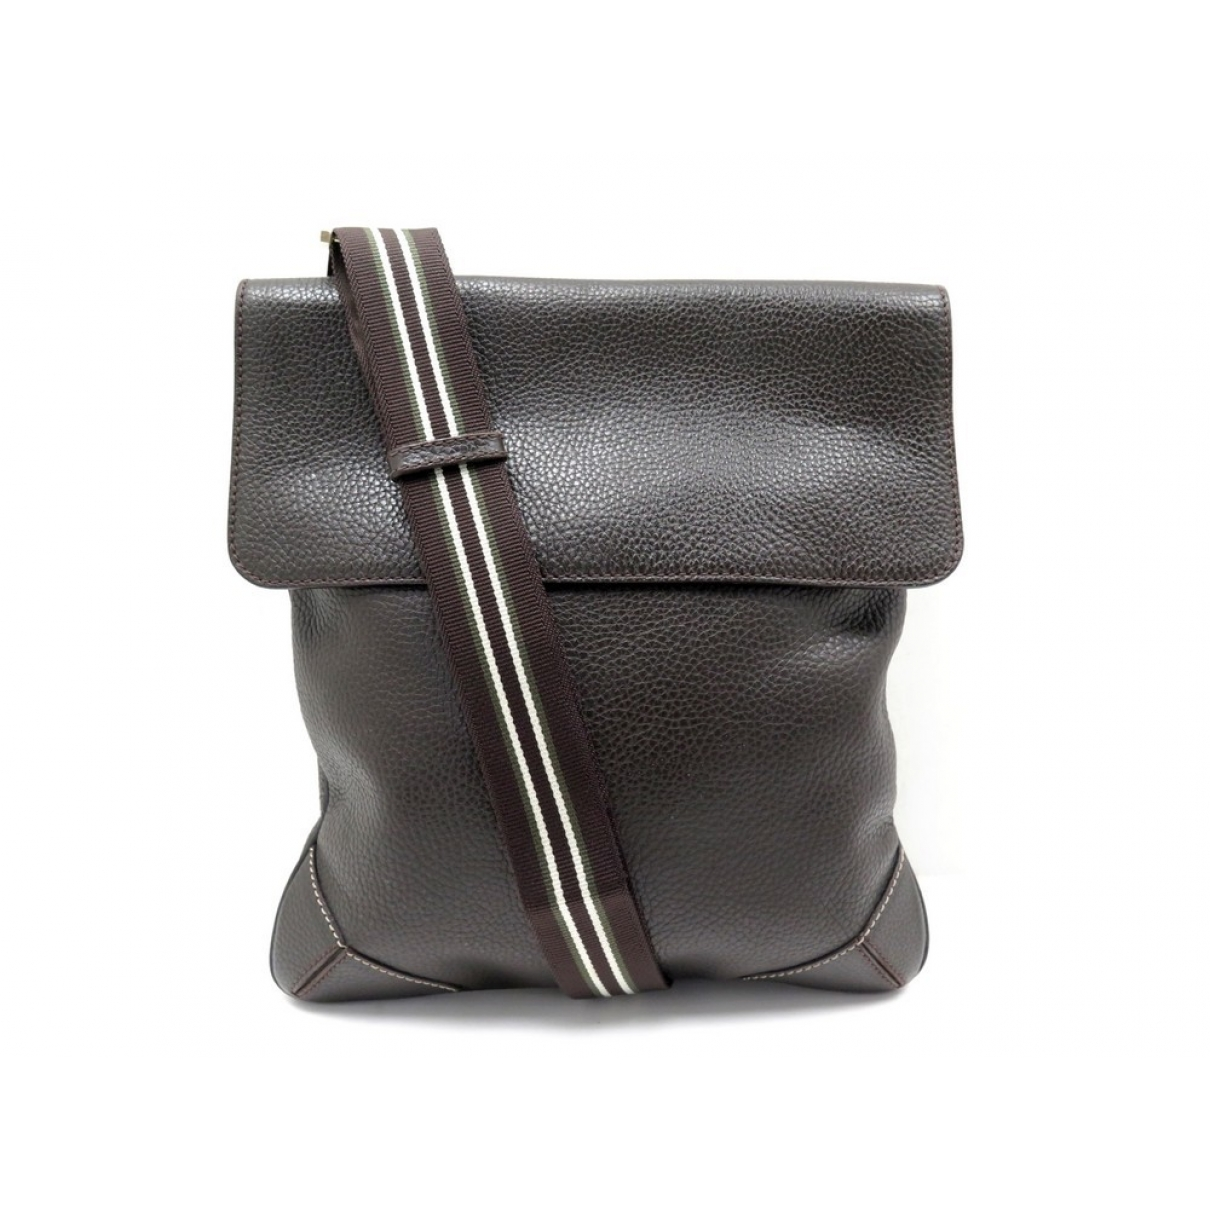 Alfred Dunhill \N Brown Leather handbag for Women \N